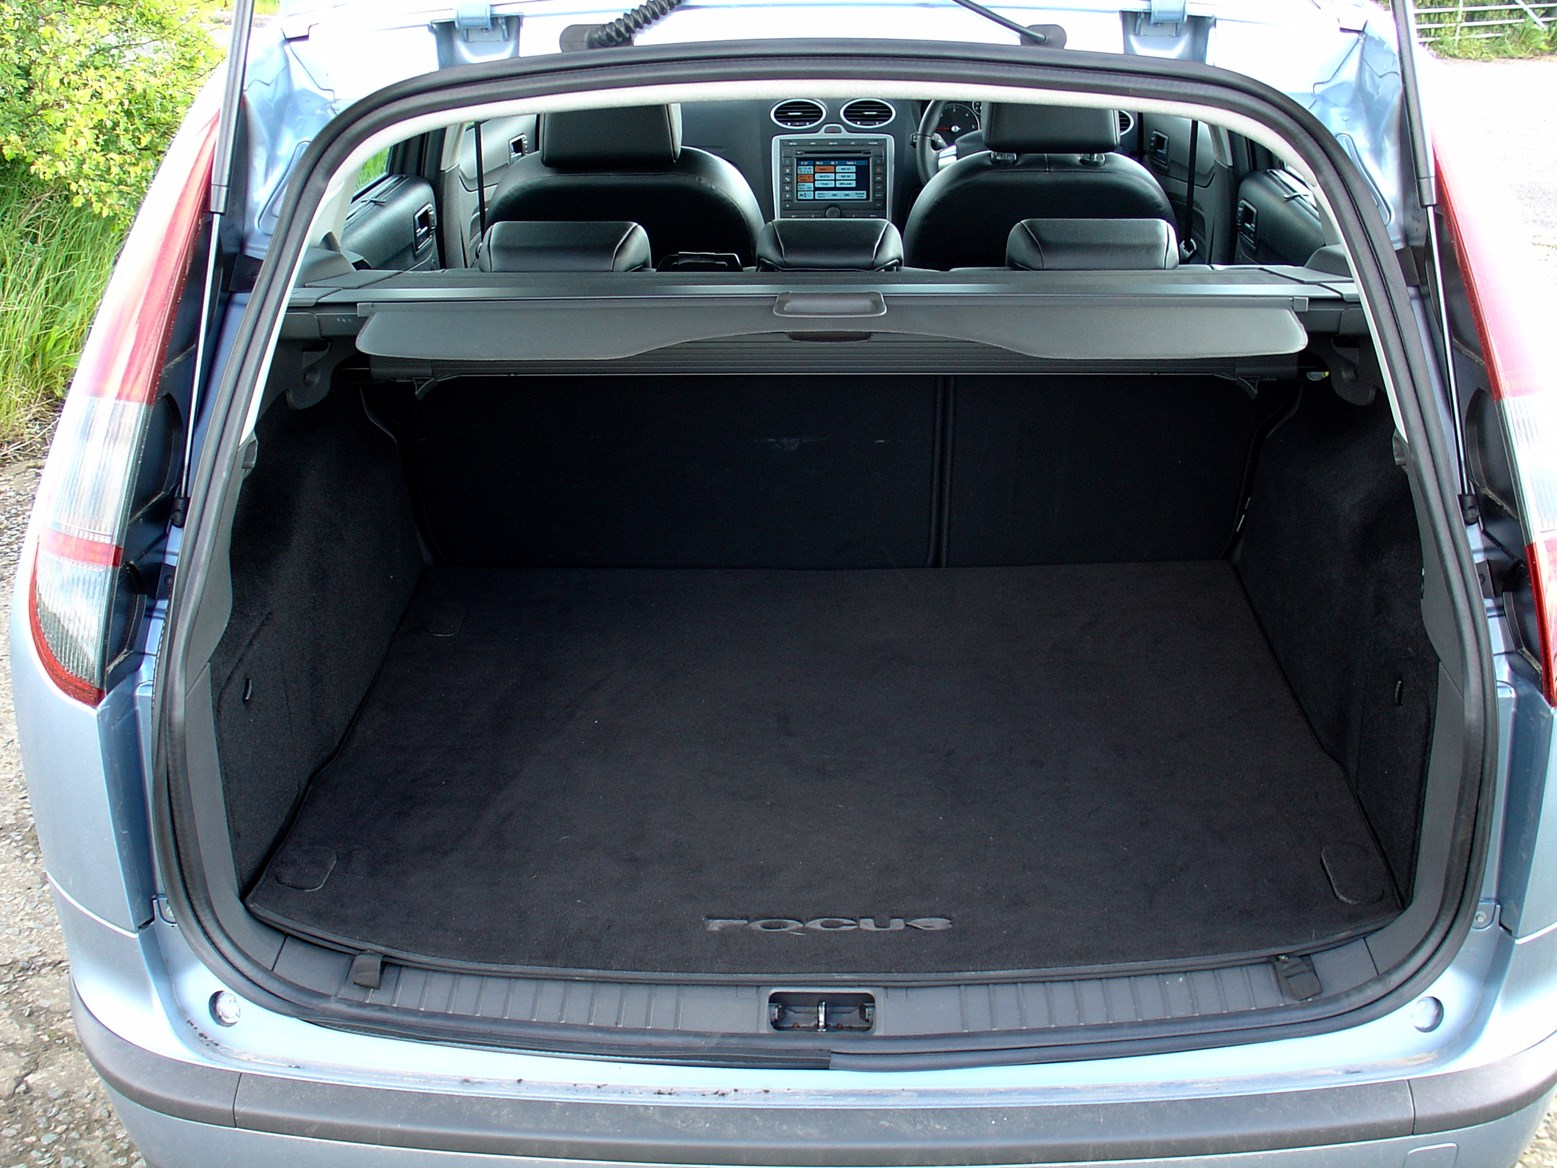 Ford Focus Estate 2005 2017 Features Equipment And Accessories Parkers